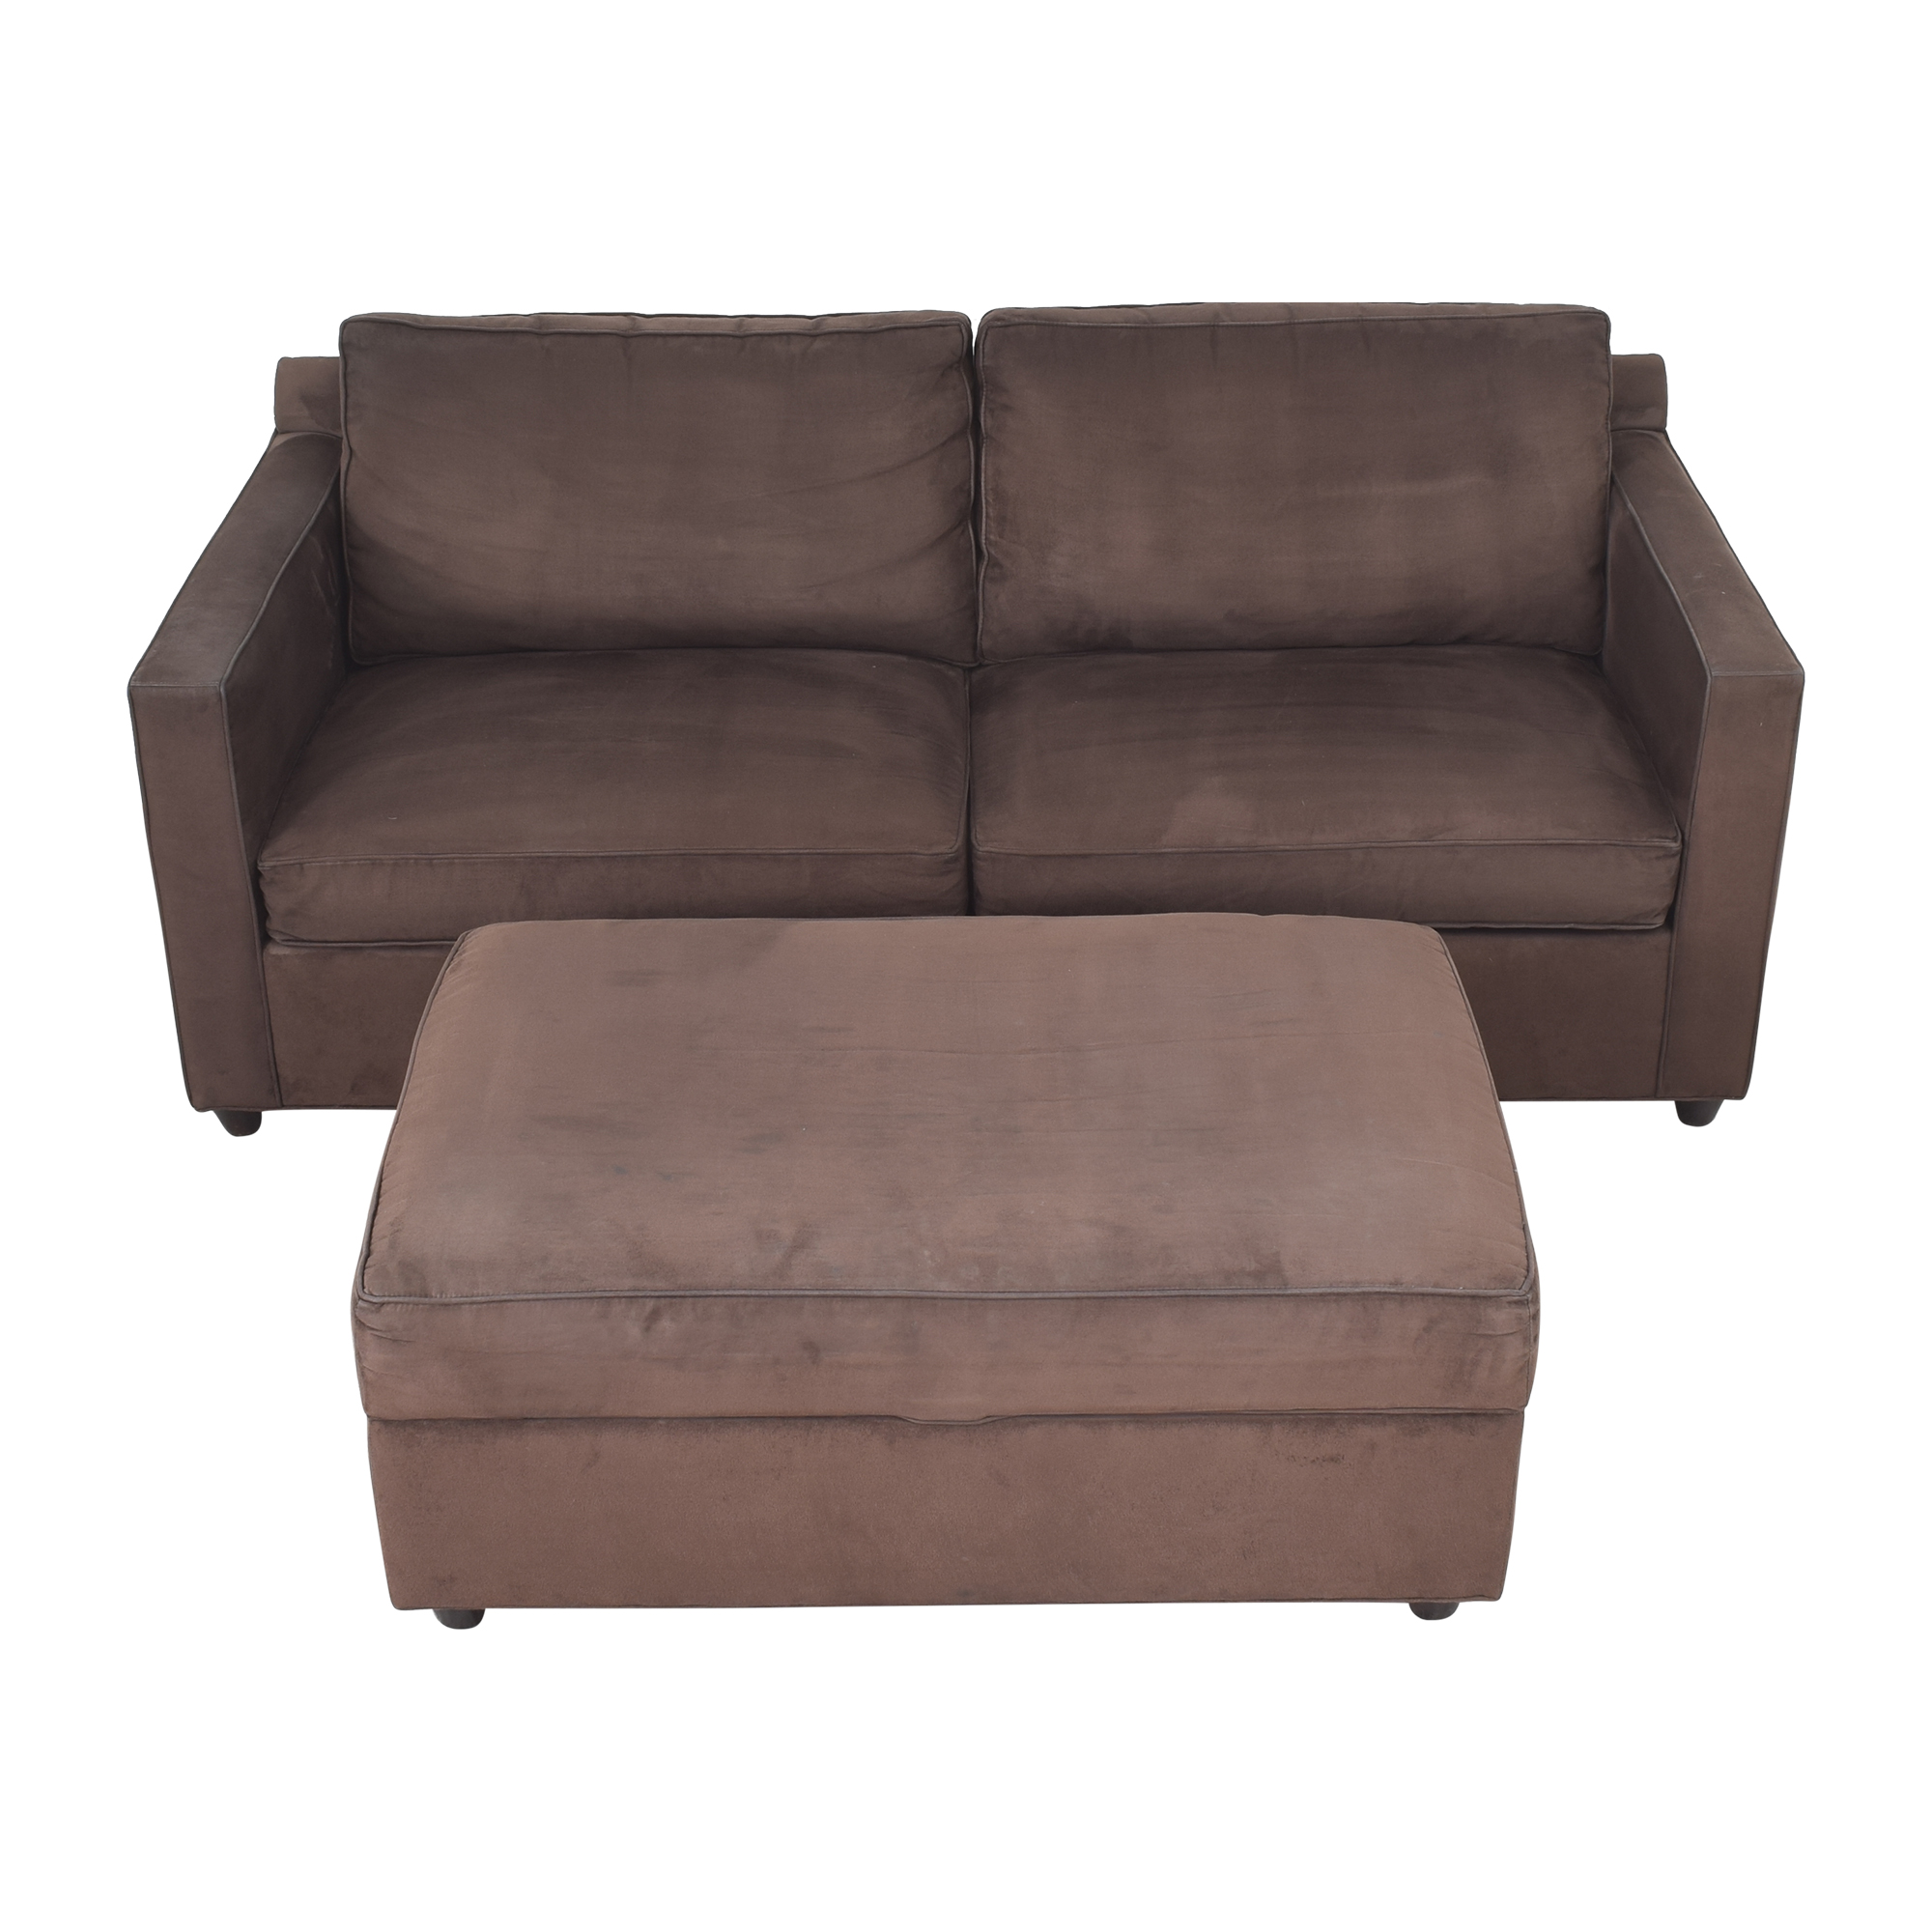 shop Crate & Barrel Crate & Barrel Two Cushion Sofa with Storage Ottoman online